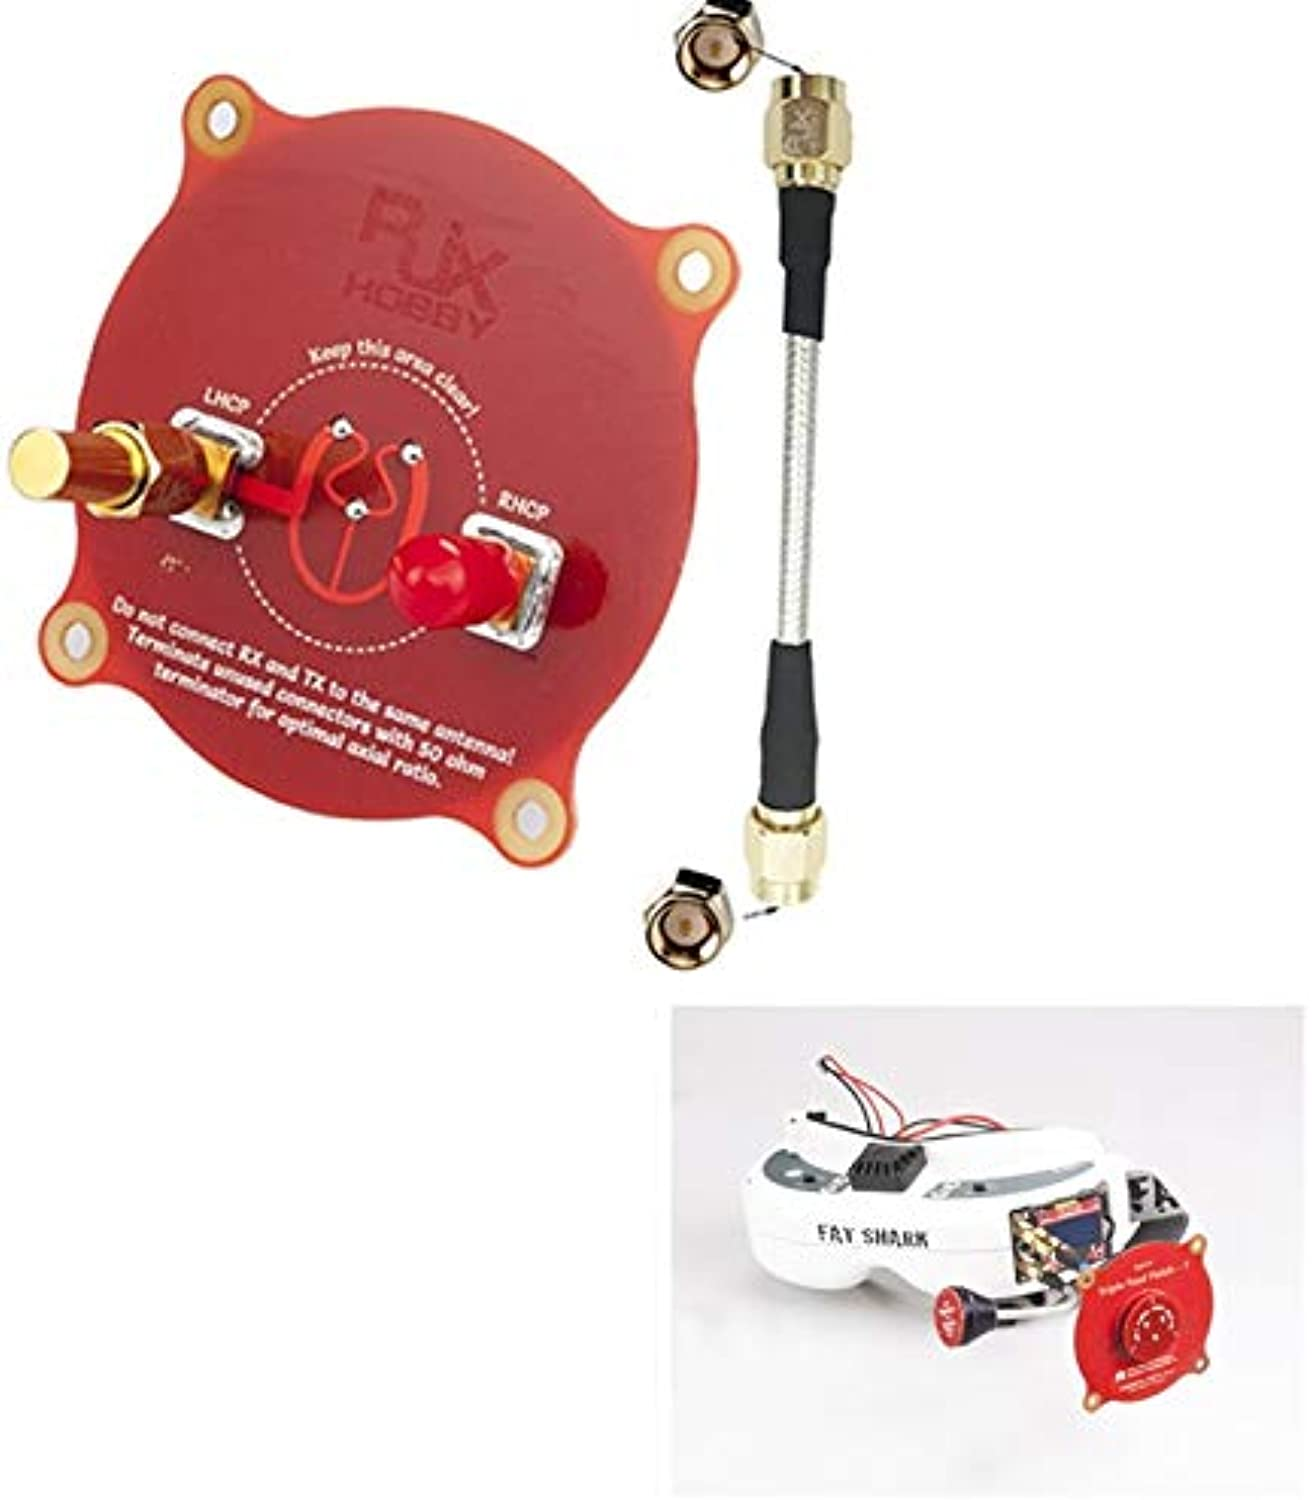 Laliva RJX 5.8 GHz 9.4dBi Triple Feed Patch Antenna with a 50ohm Terminator for Fatshark FPV Goggles Red